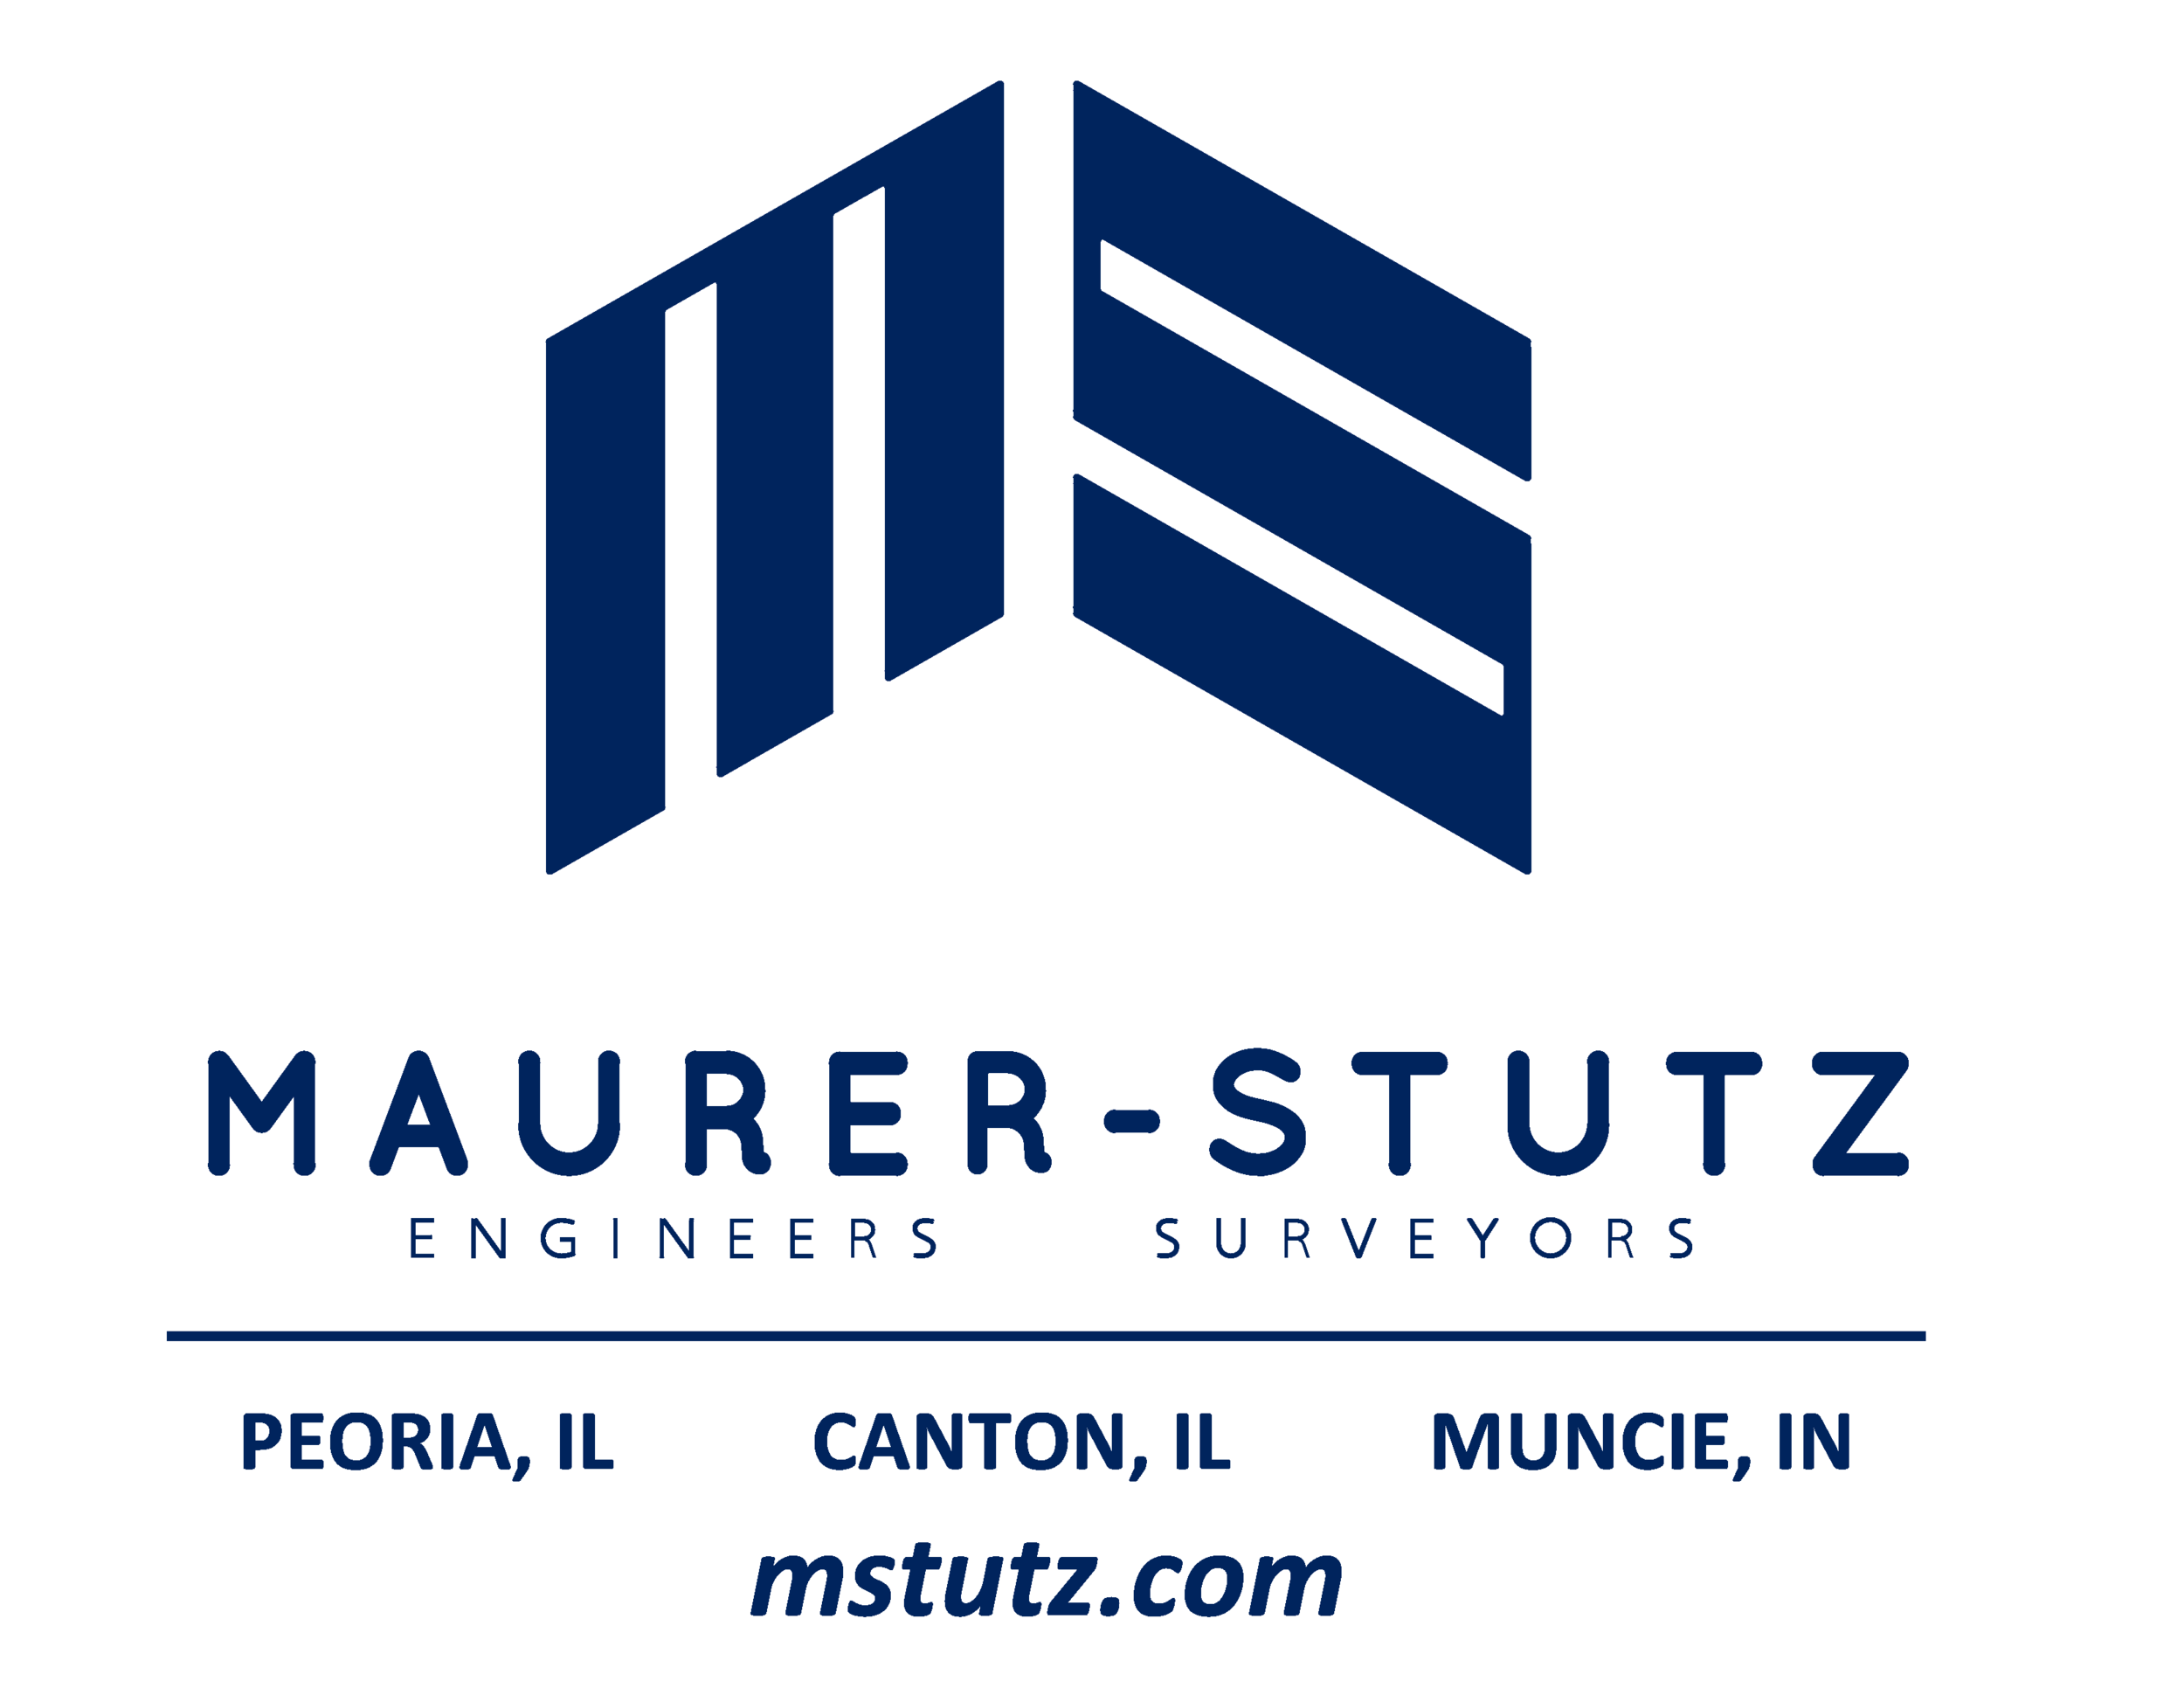 - Maurer-Stutz hopes to see you at one of the upcoming swine tradeshows. Please stop by our booth and meet our new team members or give one of us a call.Maurer-Stutz, Inc offers Manure Nutrient Management Plan Development and Updates, permitting assistance, and engineering design and construction phase services.